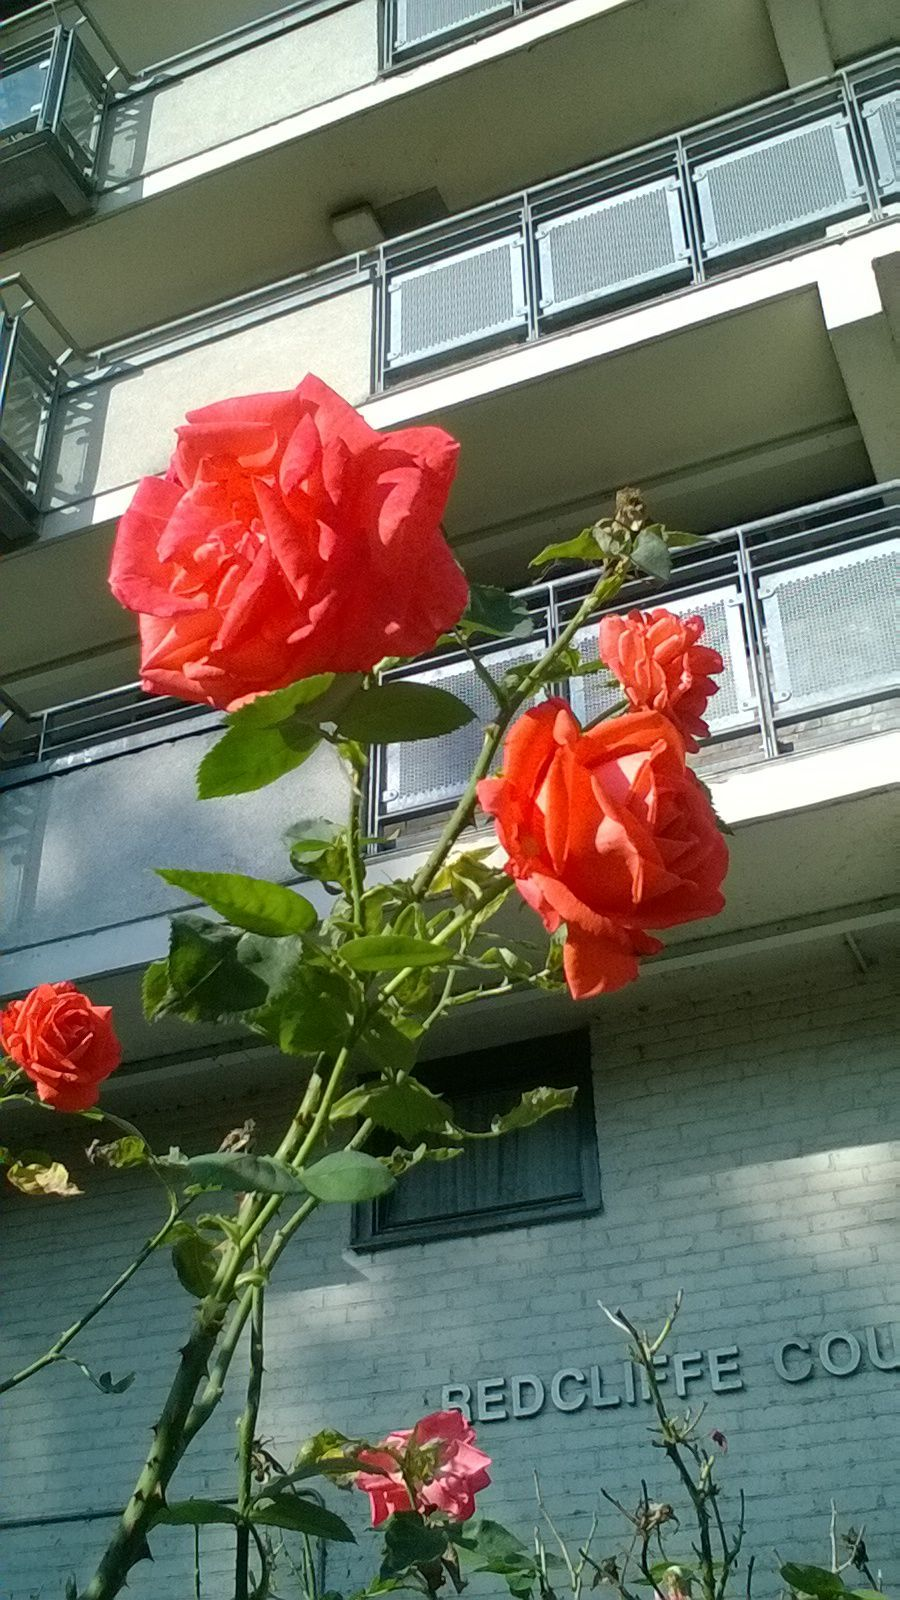 i chose this image because it shows that something beautiful can still have ugly intentions. the beautiful rose with its sharp thorns.